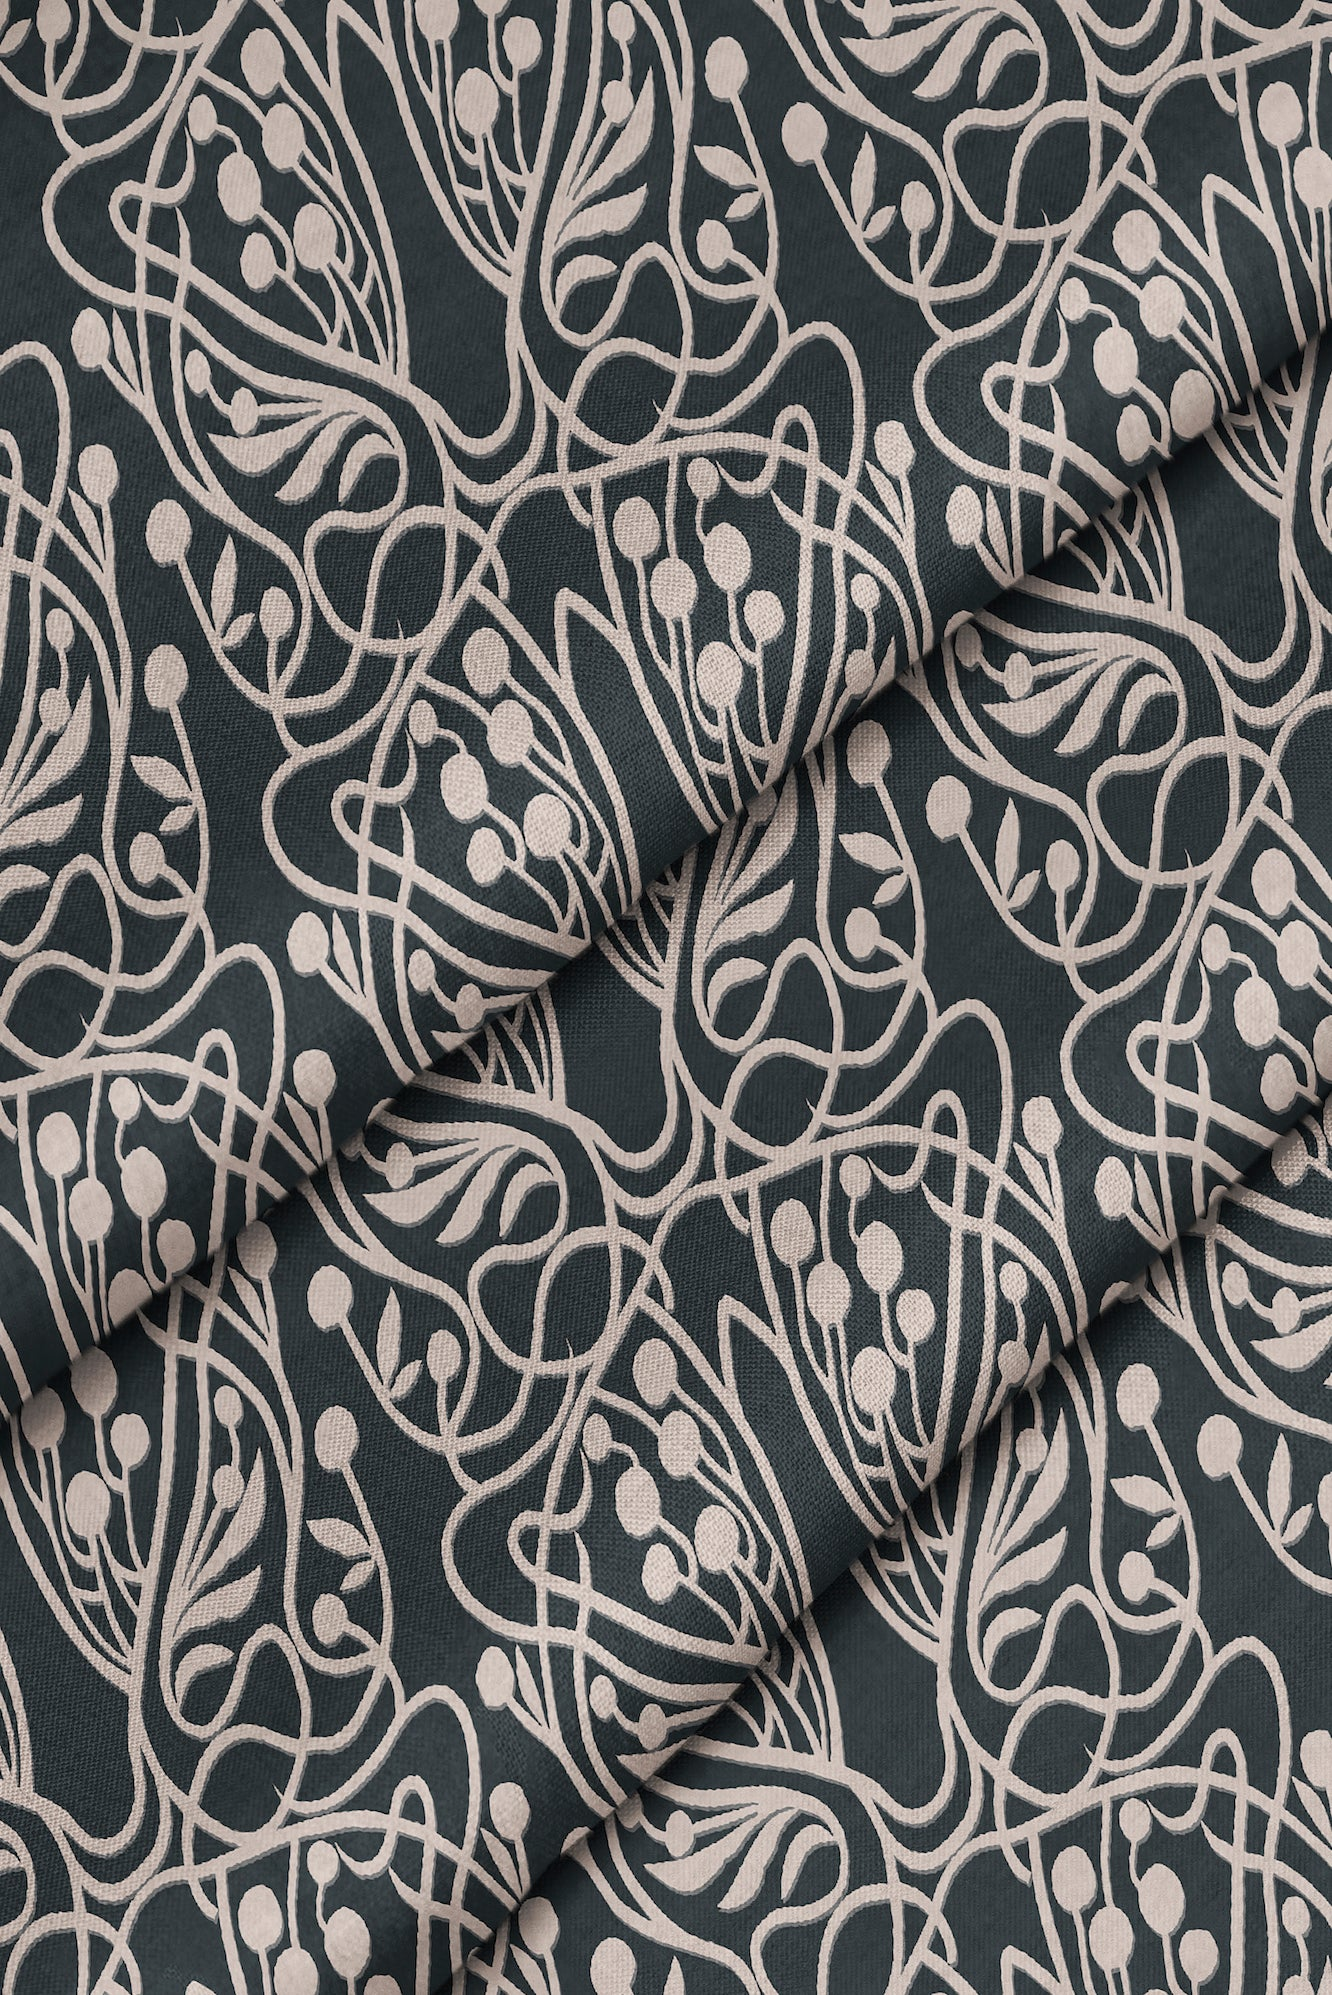 Vineyard Small Fabric - Black & Blush